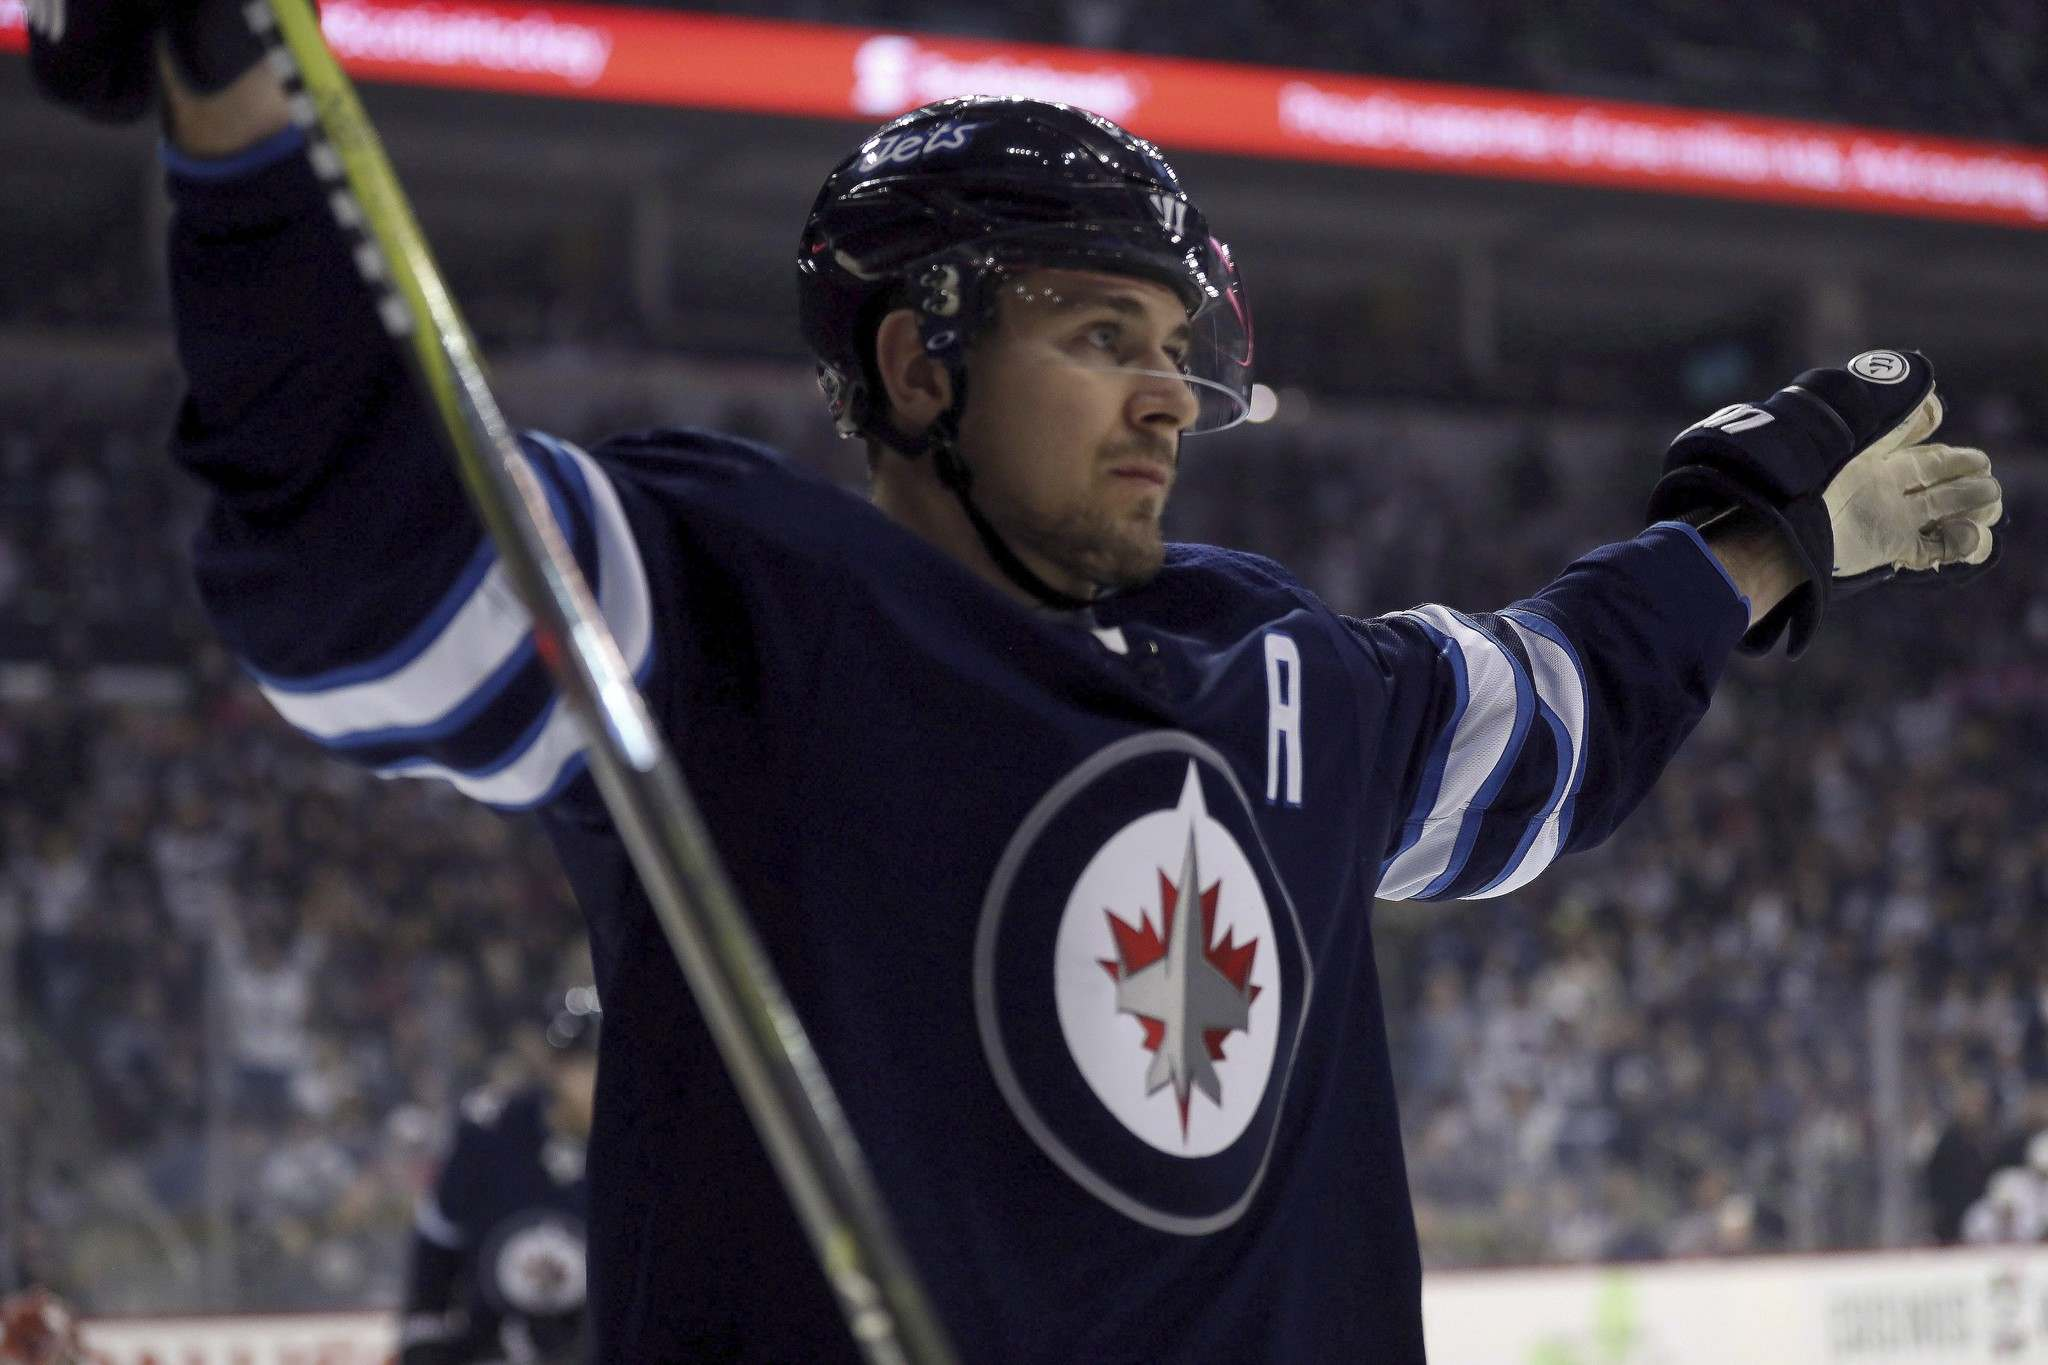 <p>Winnipeg Jets' Mark Scheifele celebrates scoring against the Ottawa Senators.</p>